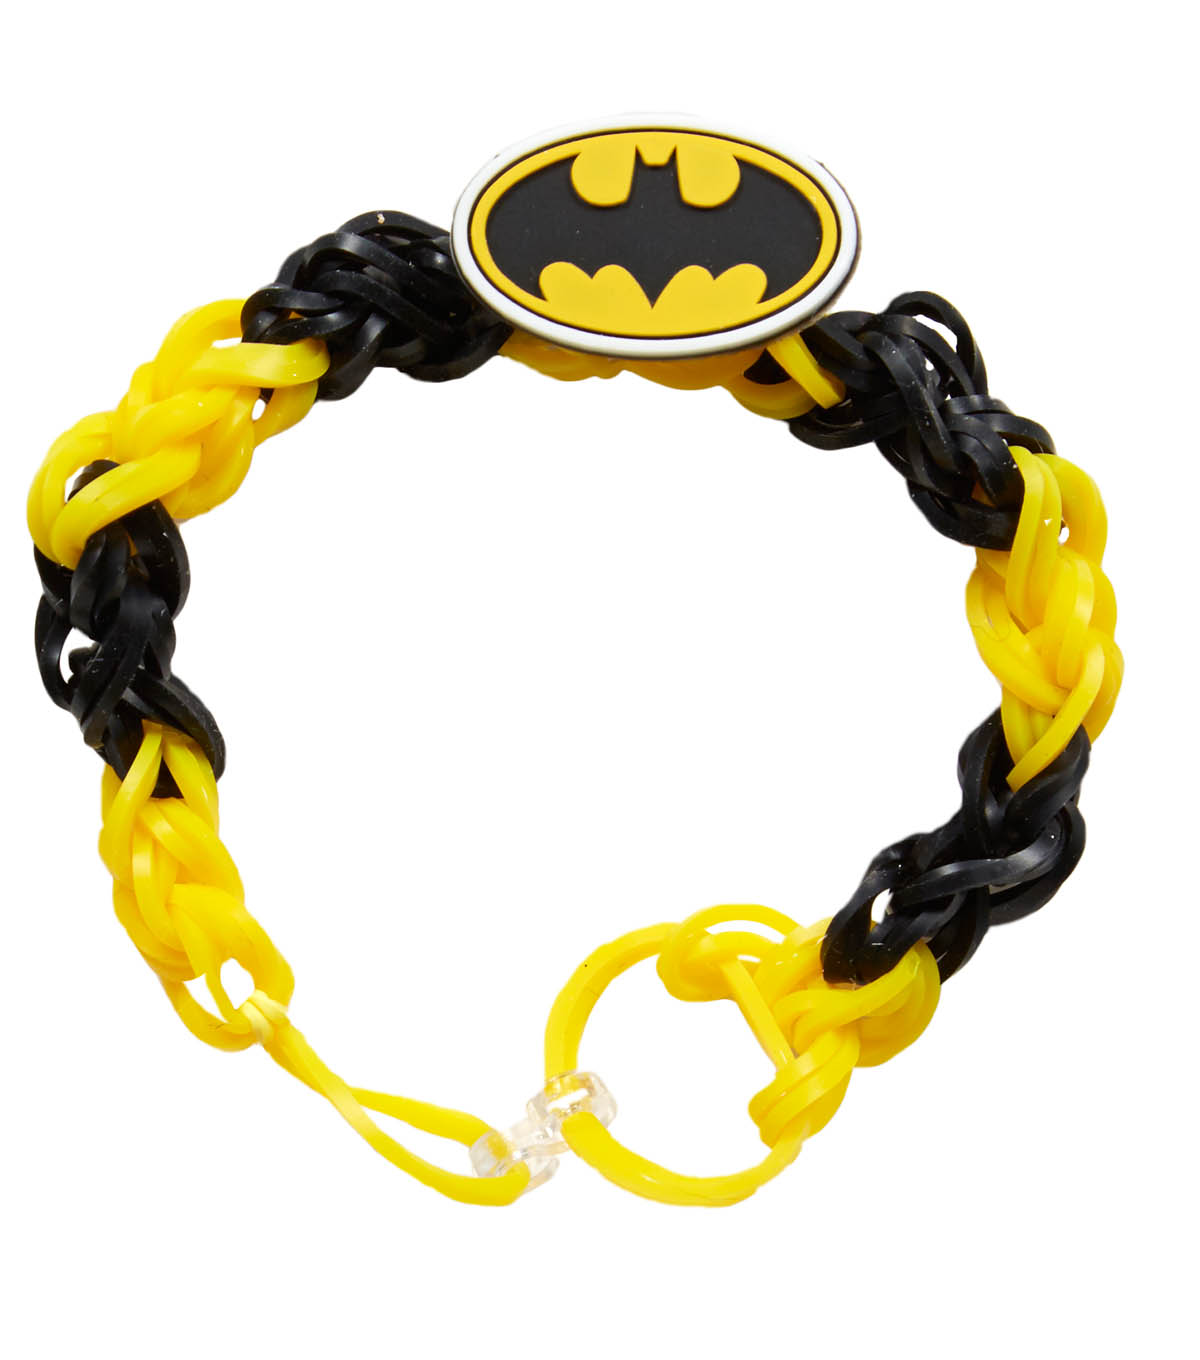 Batman Stretch Band Bracelet